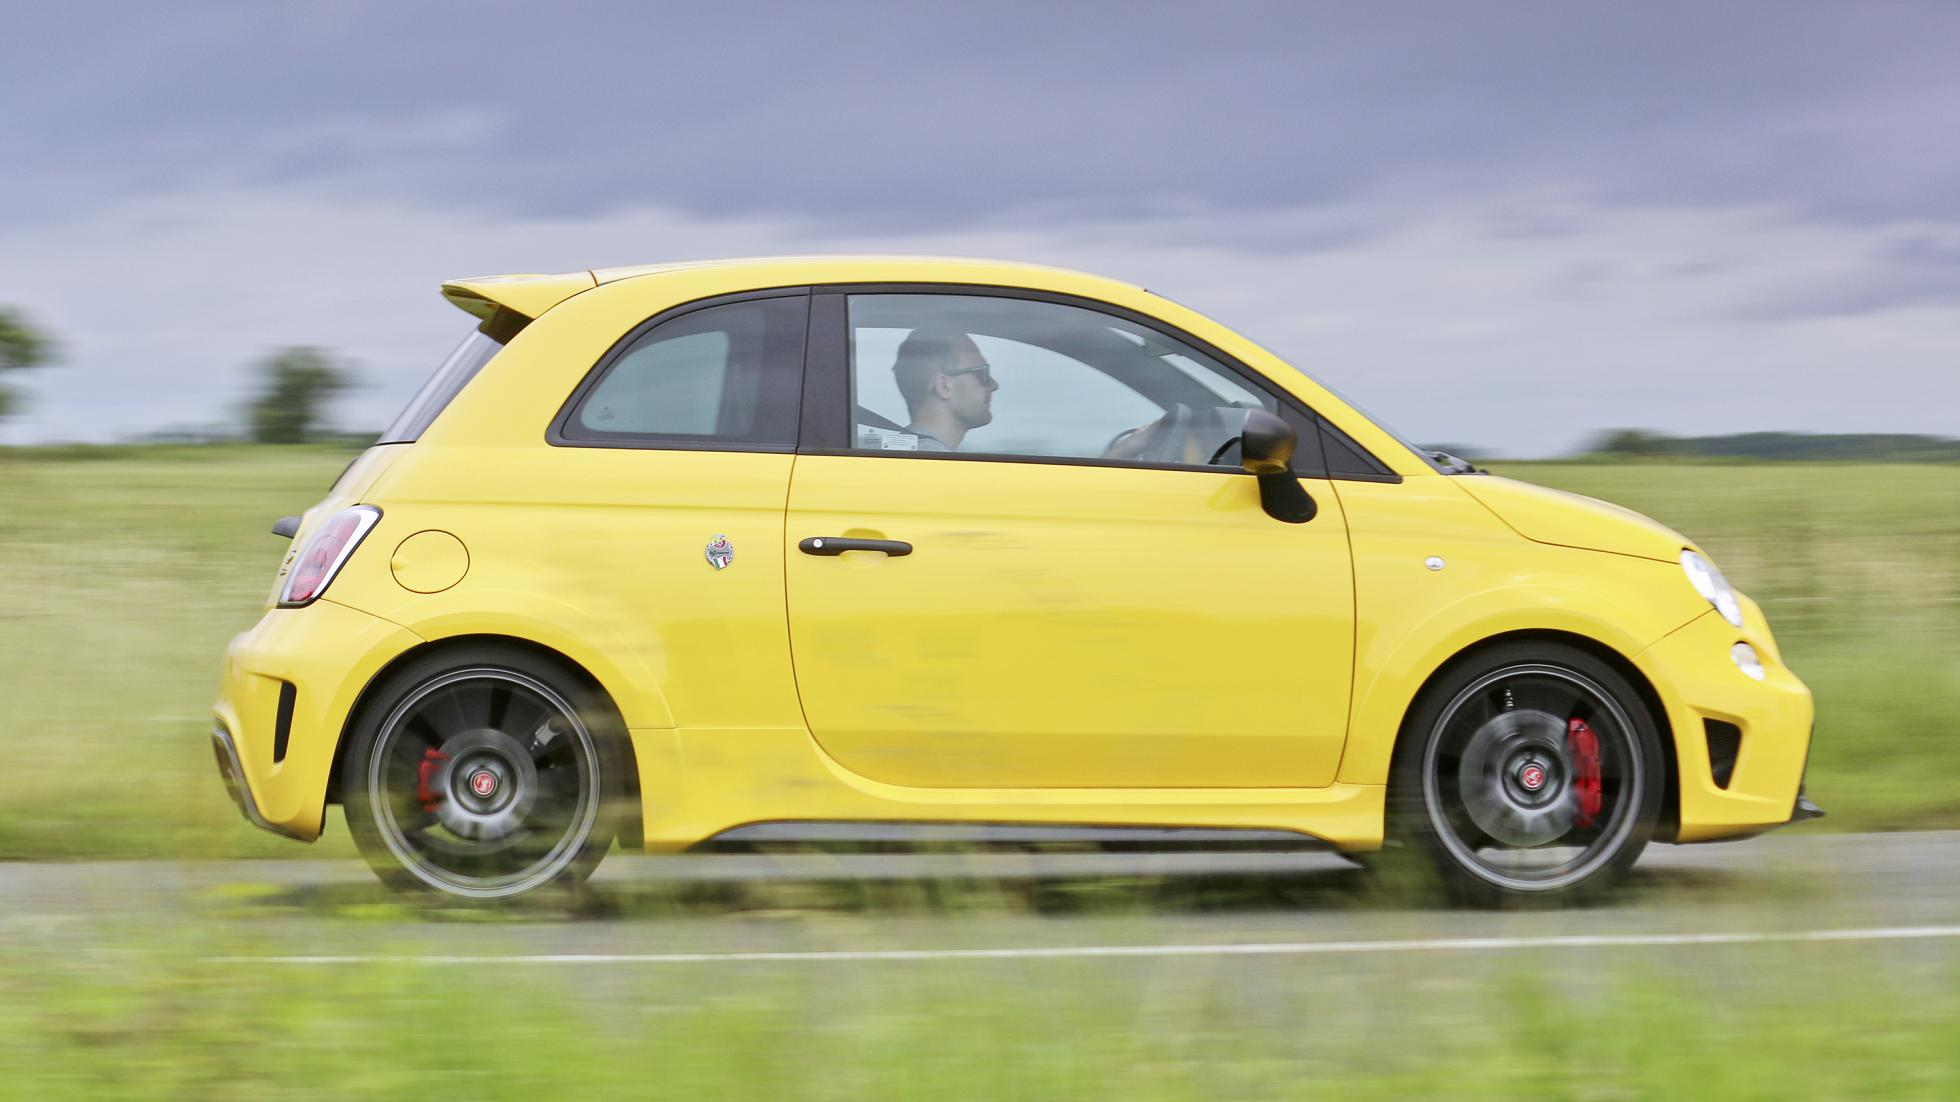 Abarth 500 yellow side